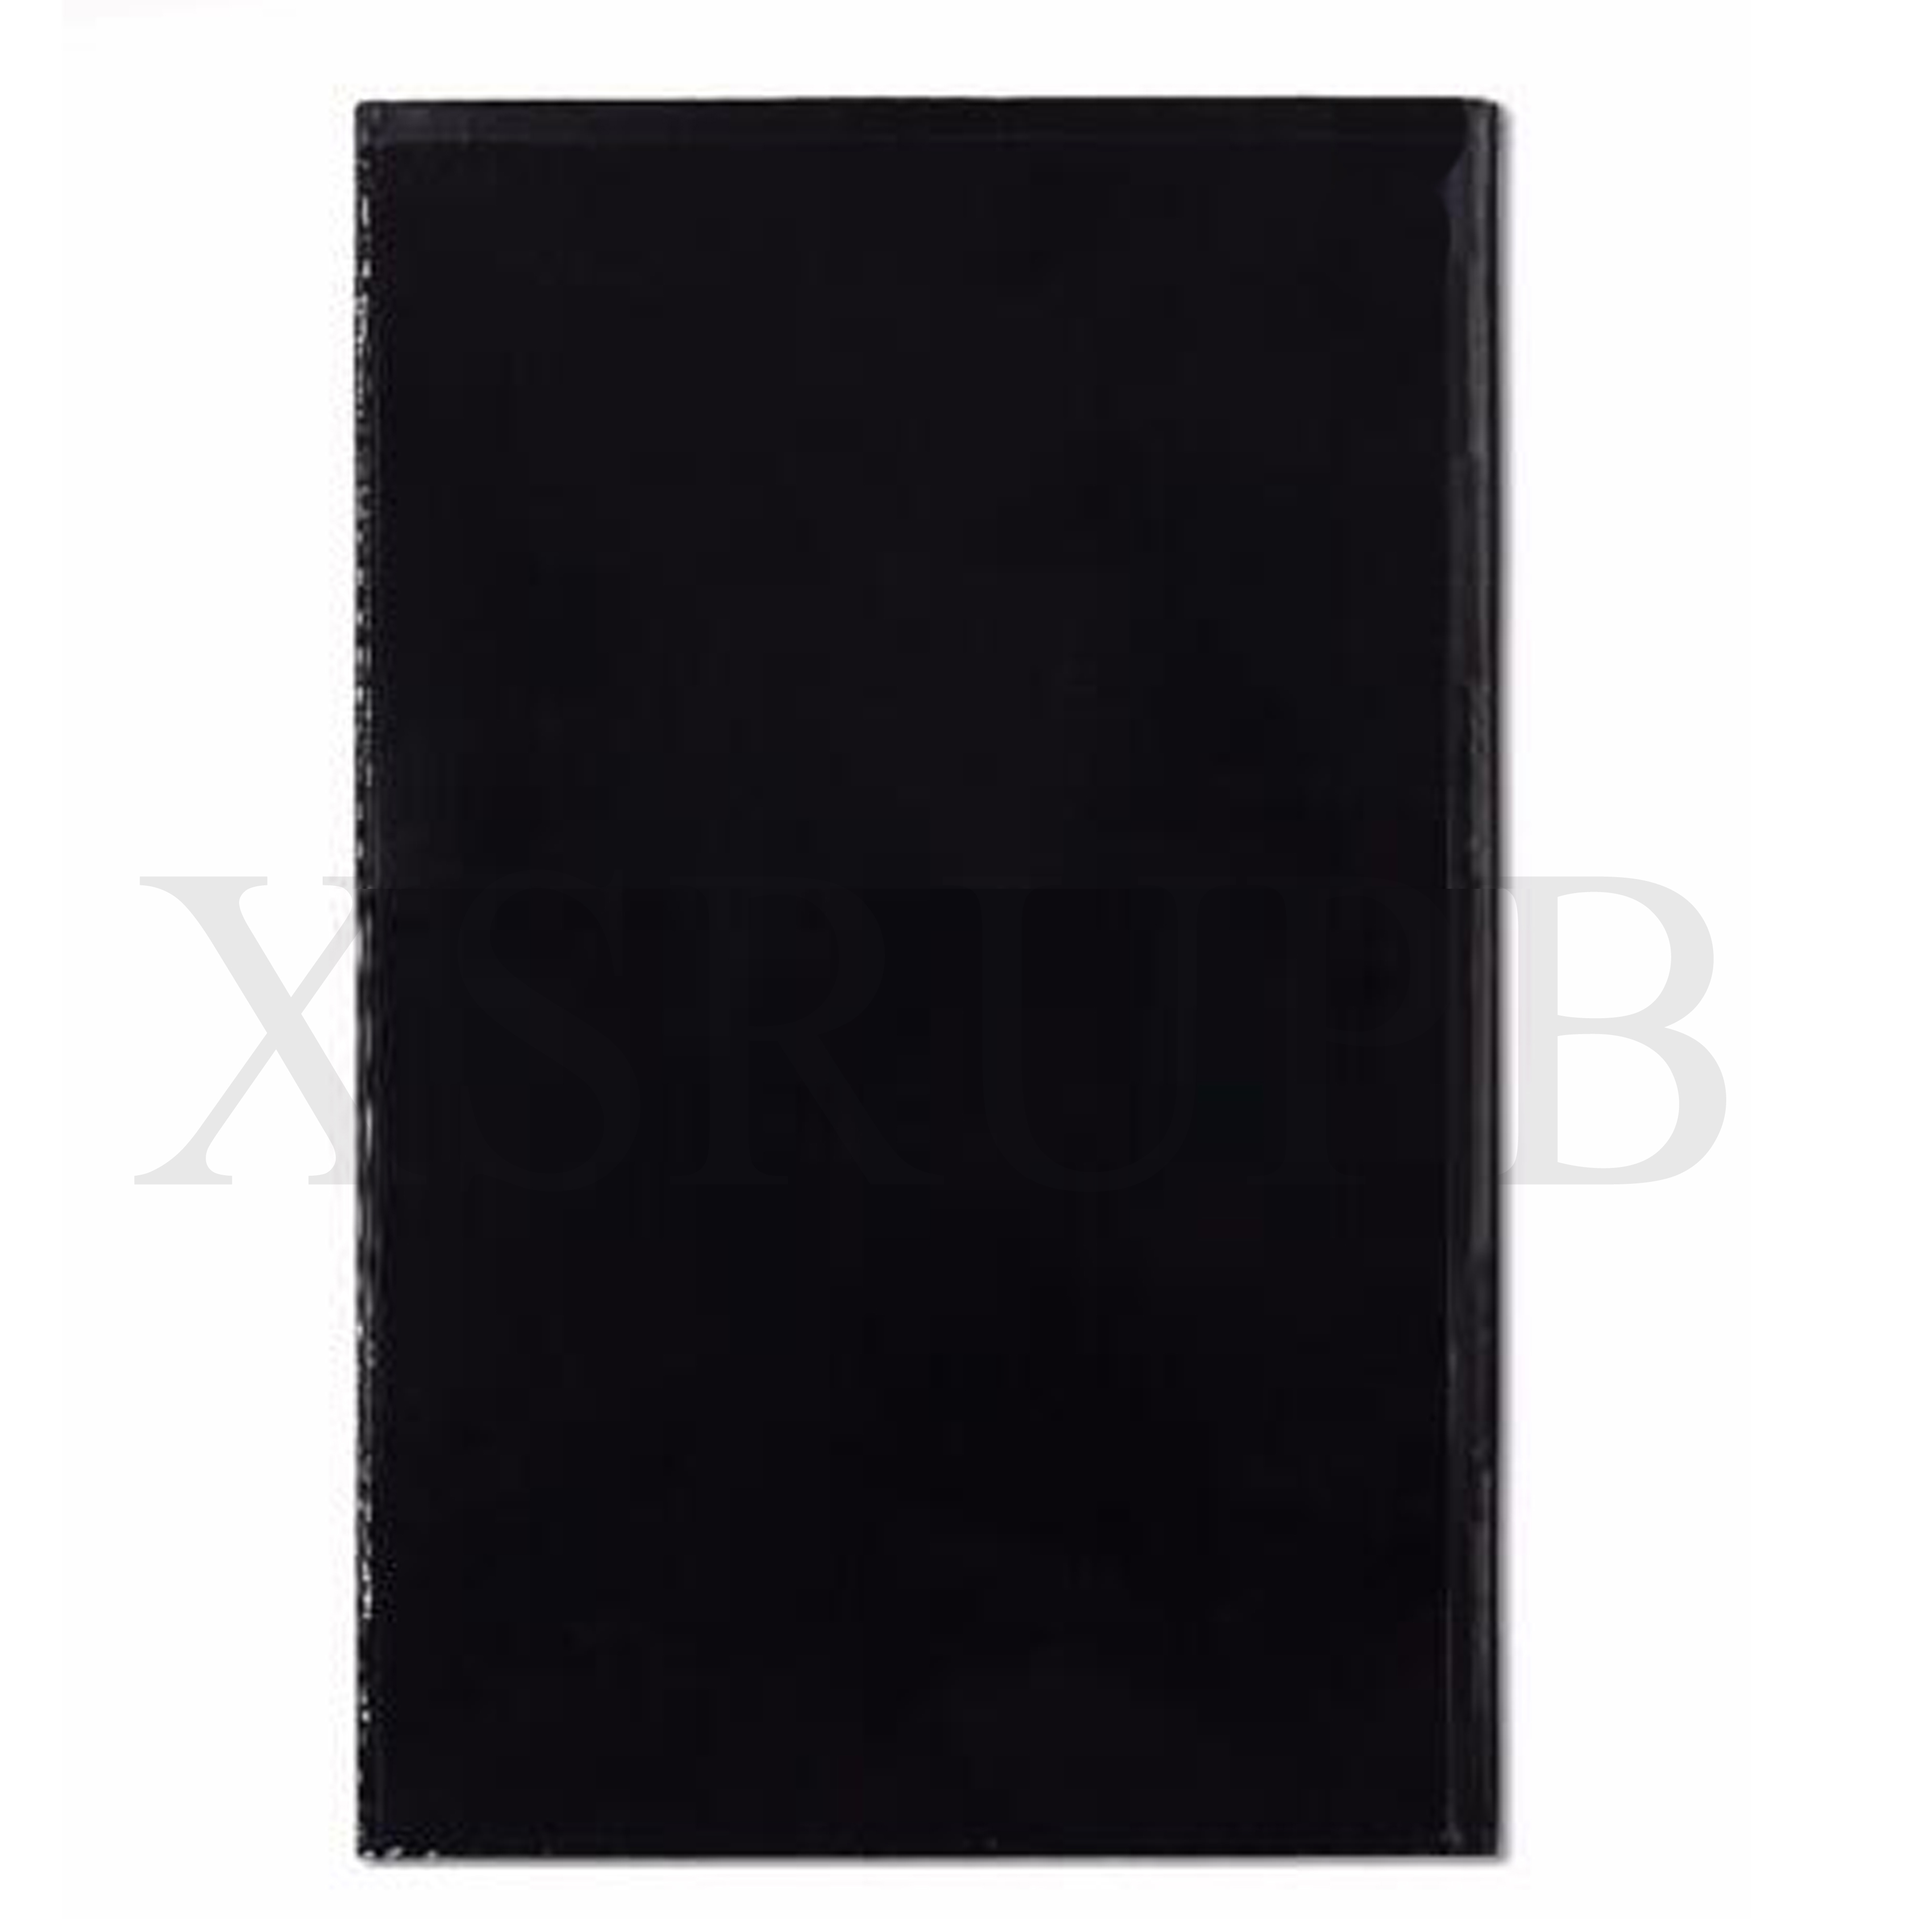 New 8 LCD For IRBIS TZ881 irbis tz 881Tablet LCD TOUCH Screen Panel Replacement Free Shipping<br>